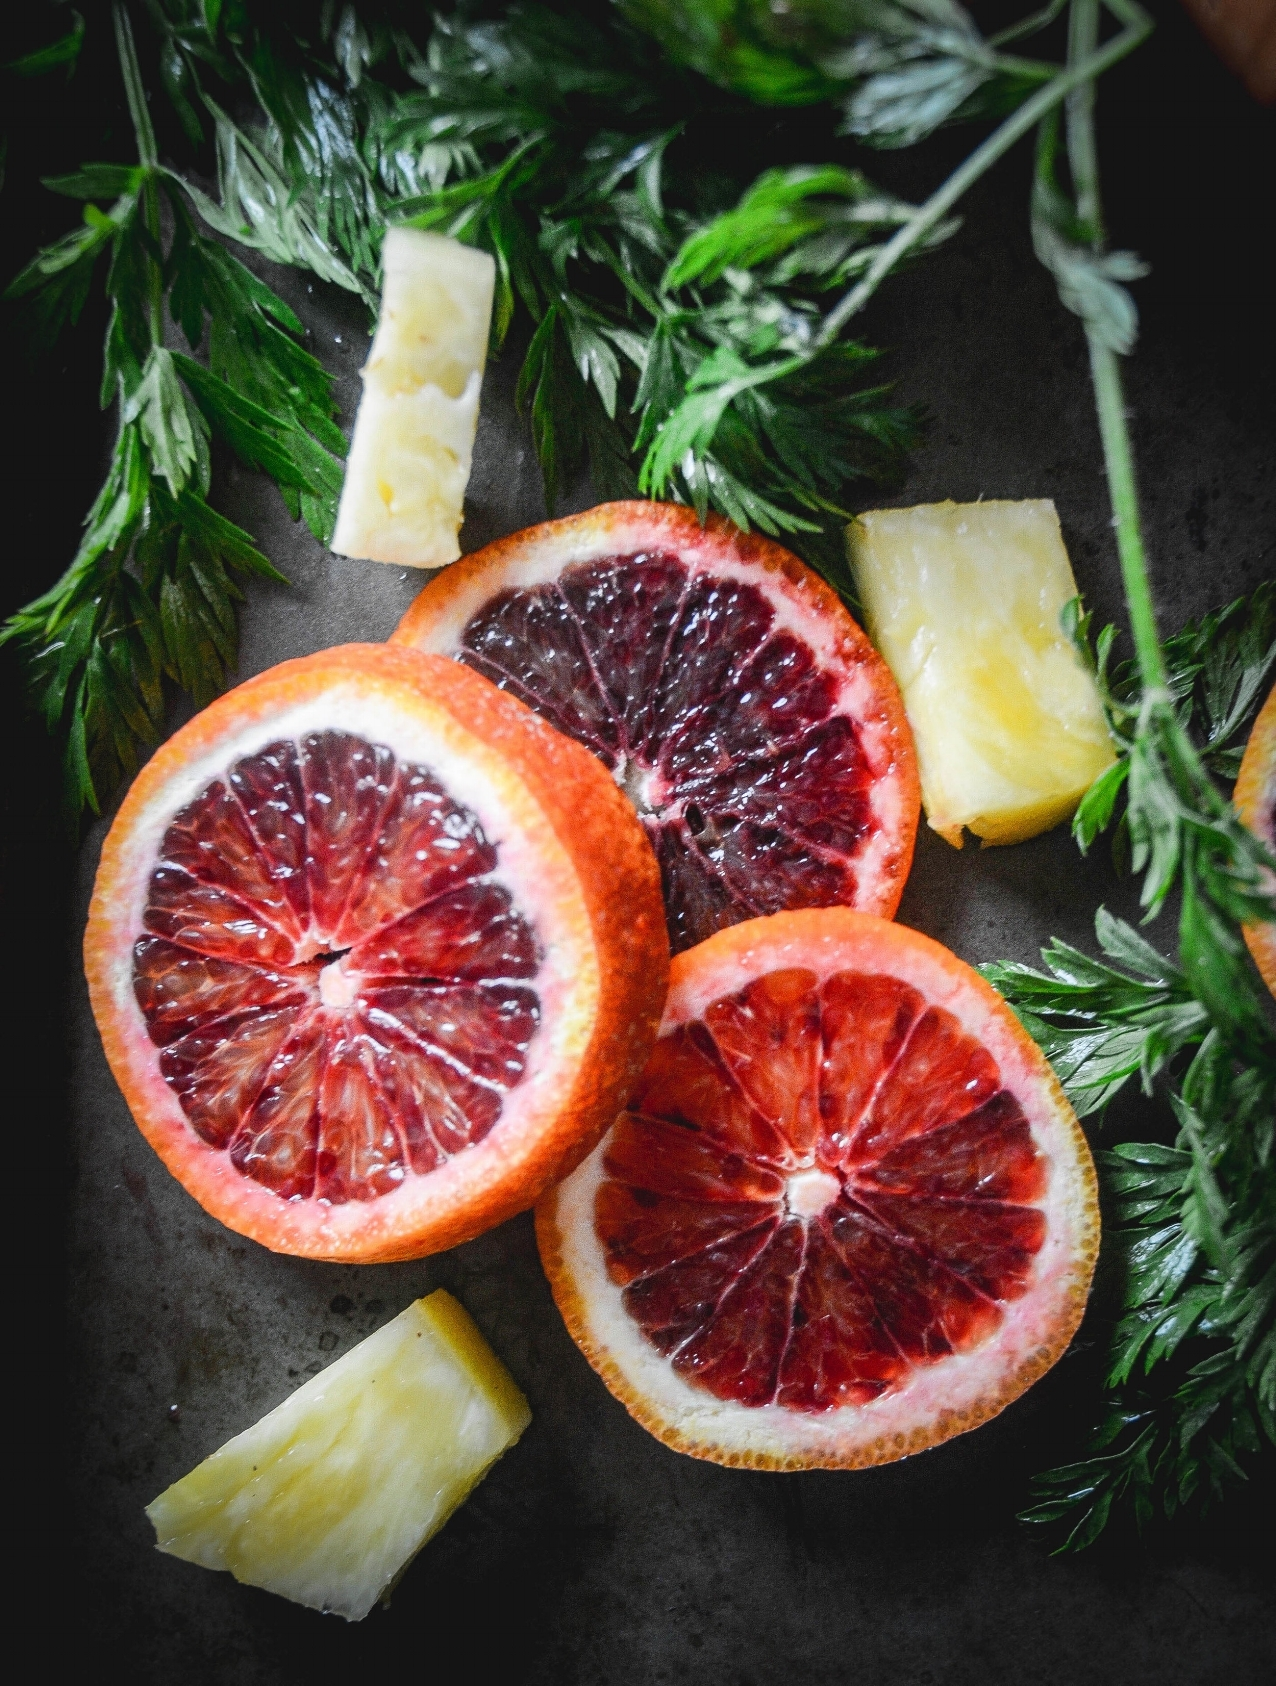 A simple blood orange smoothie fIlled with vitamins and minerals. An invigorating drink anytime of the day